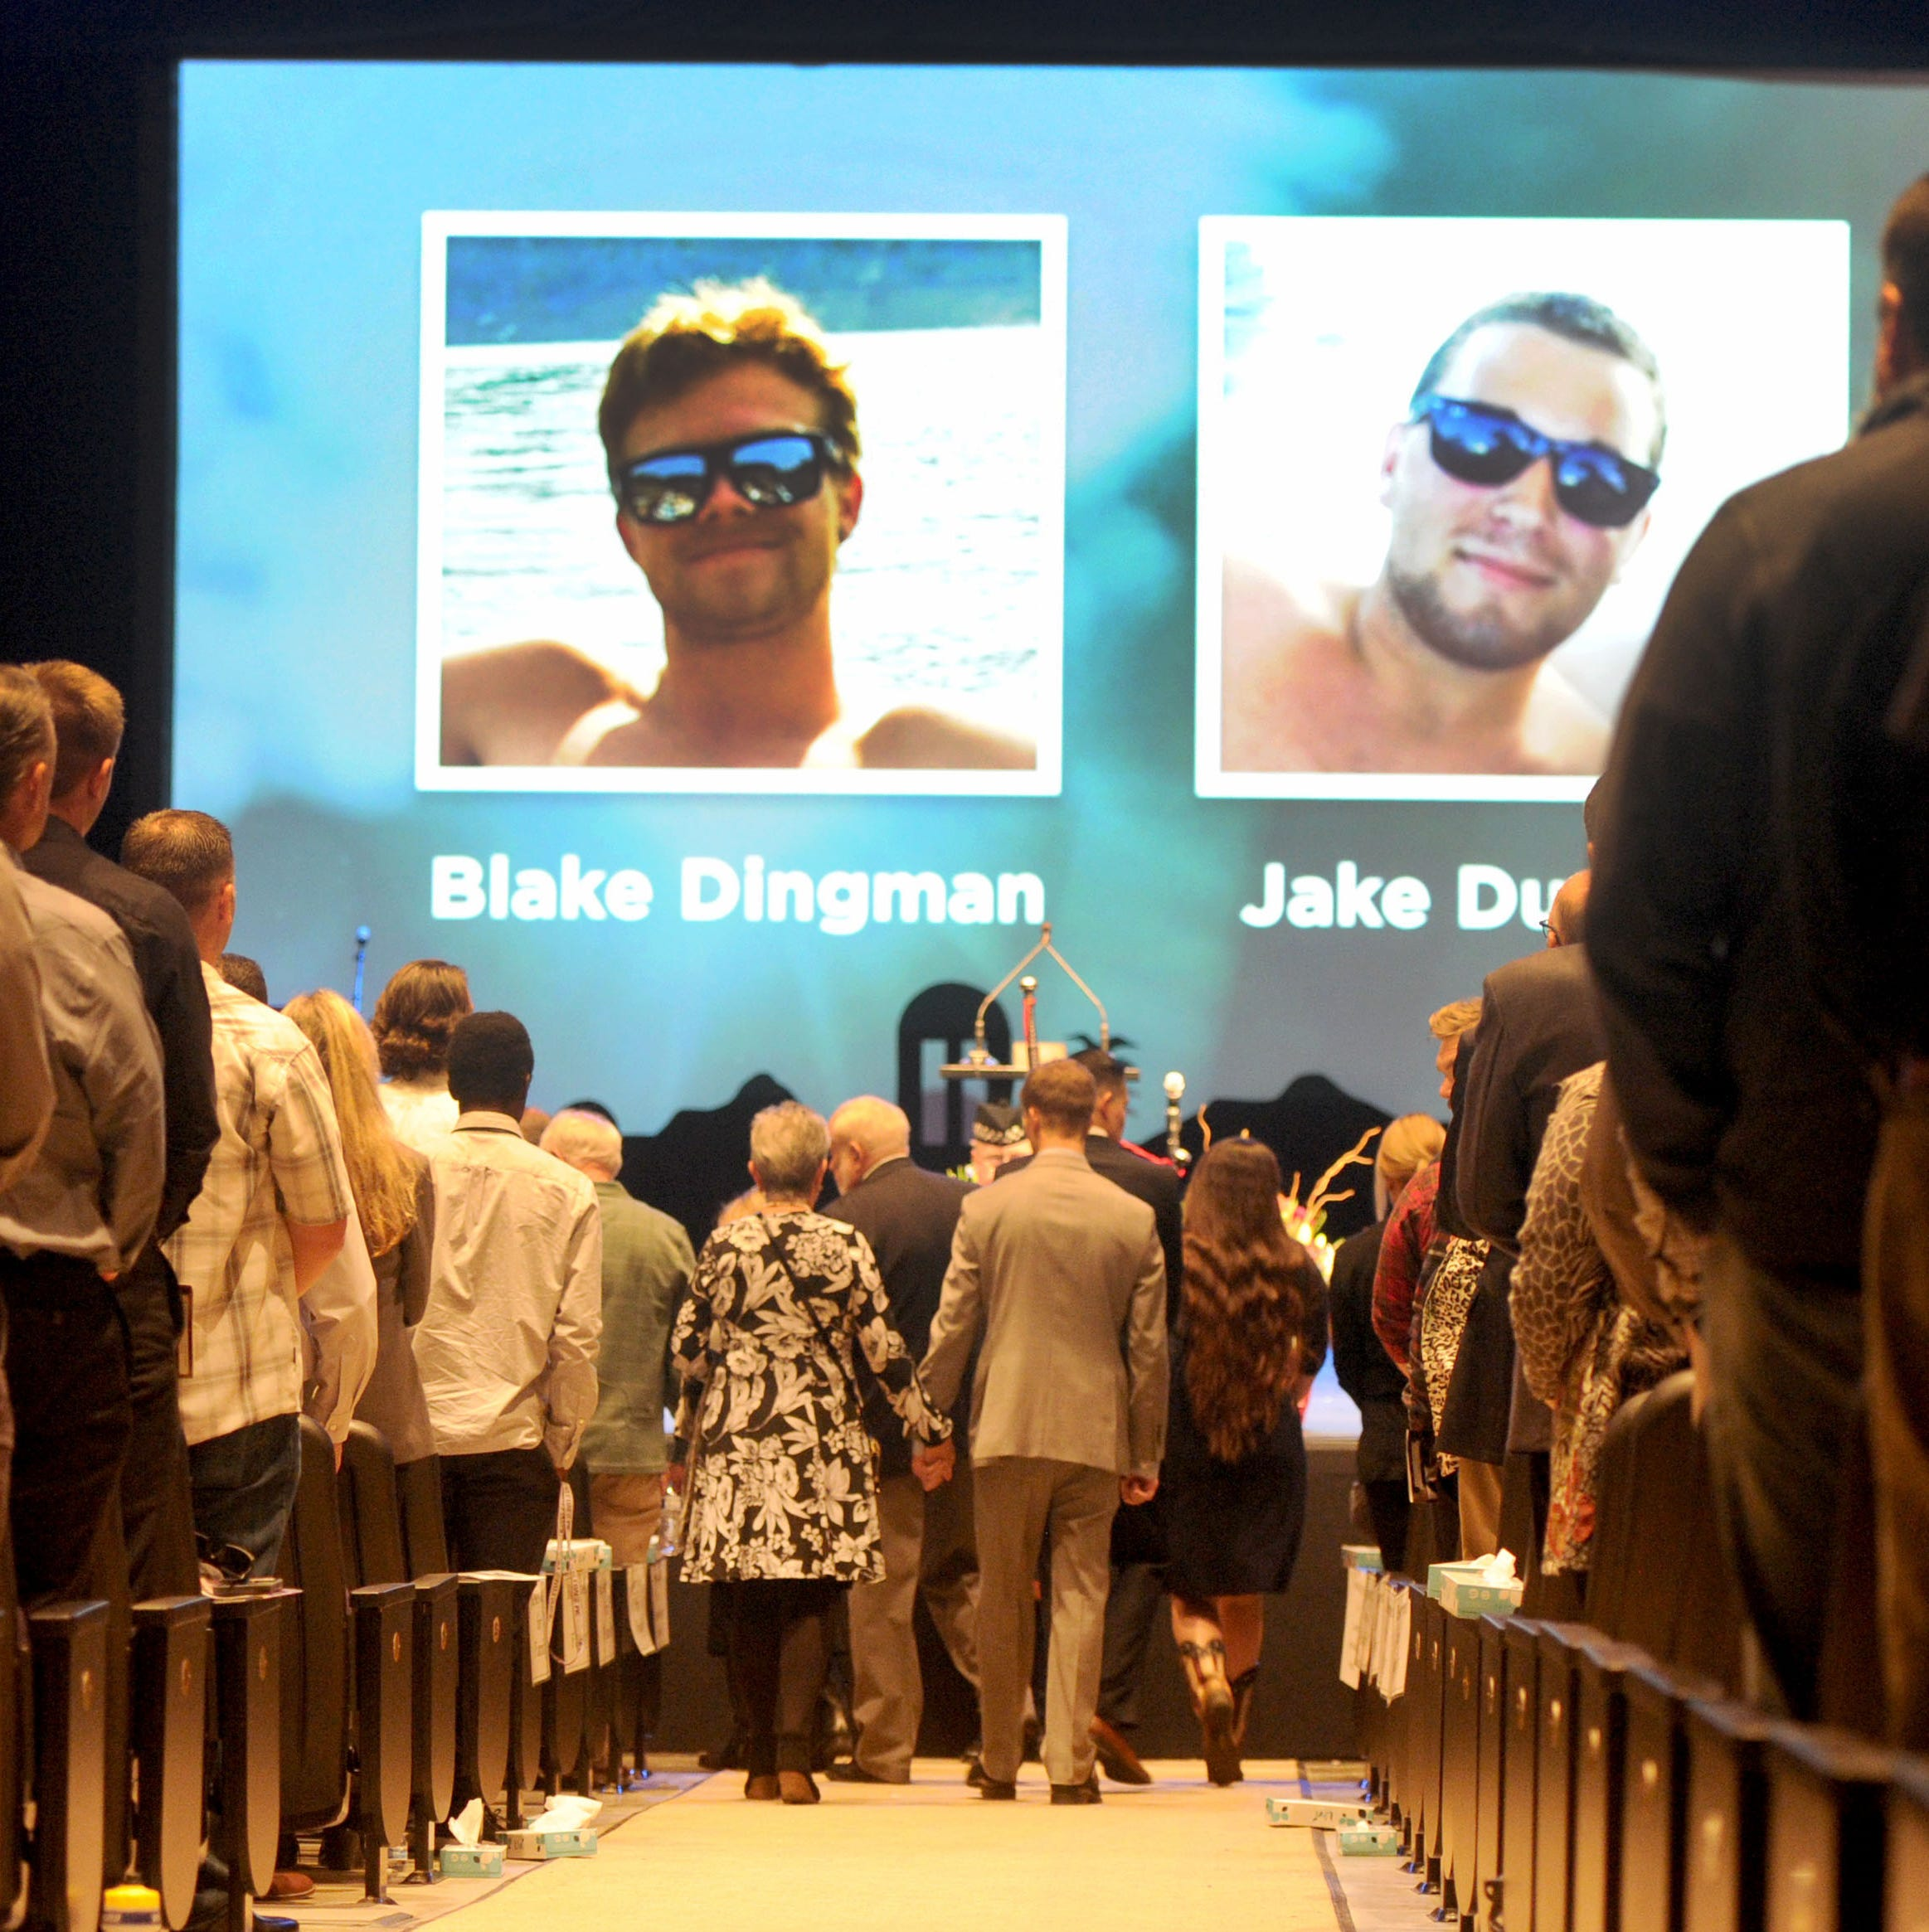 Blake Dingman and Jake Dunham, friends killed at Borderline, memorialized by thousands